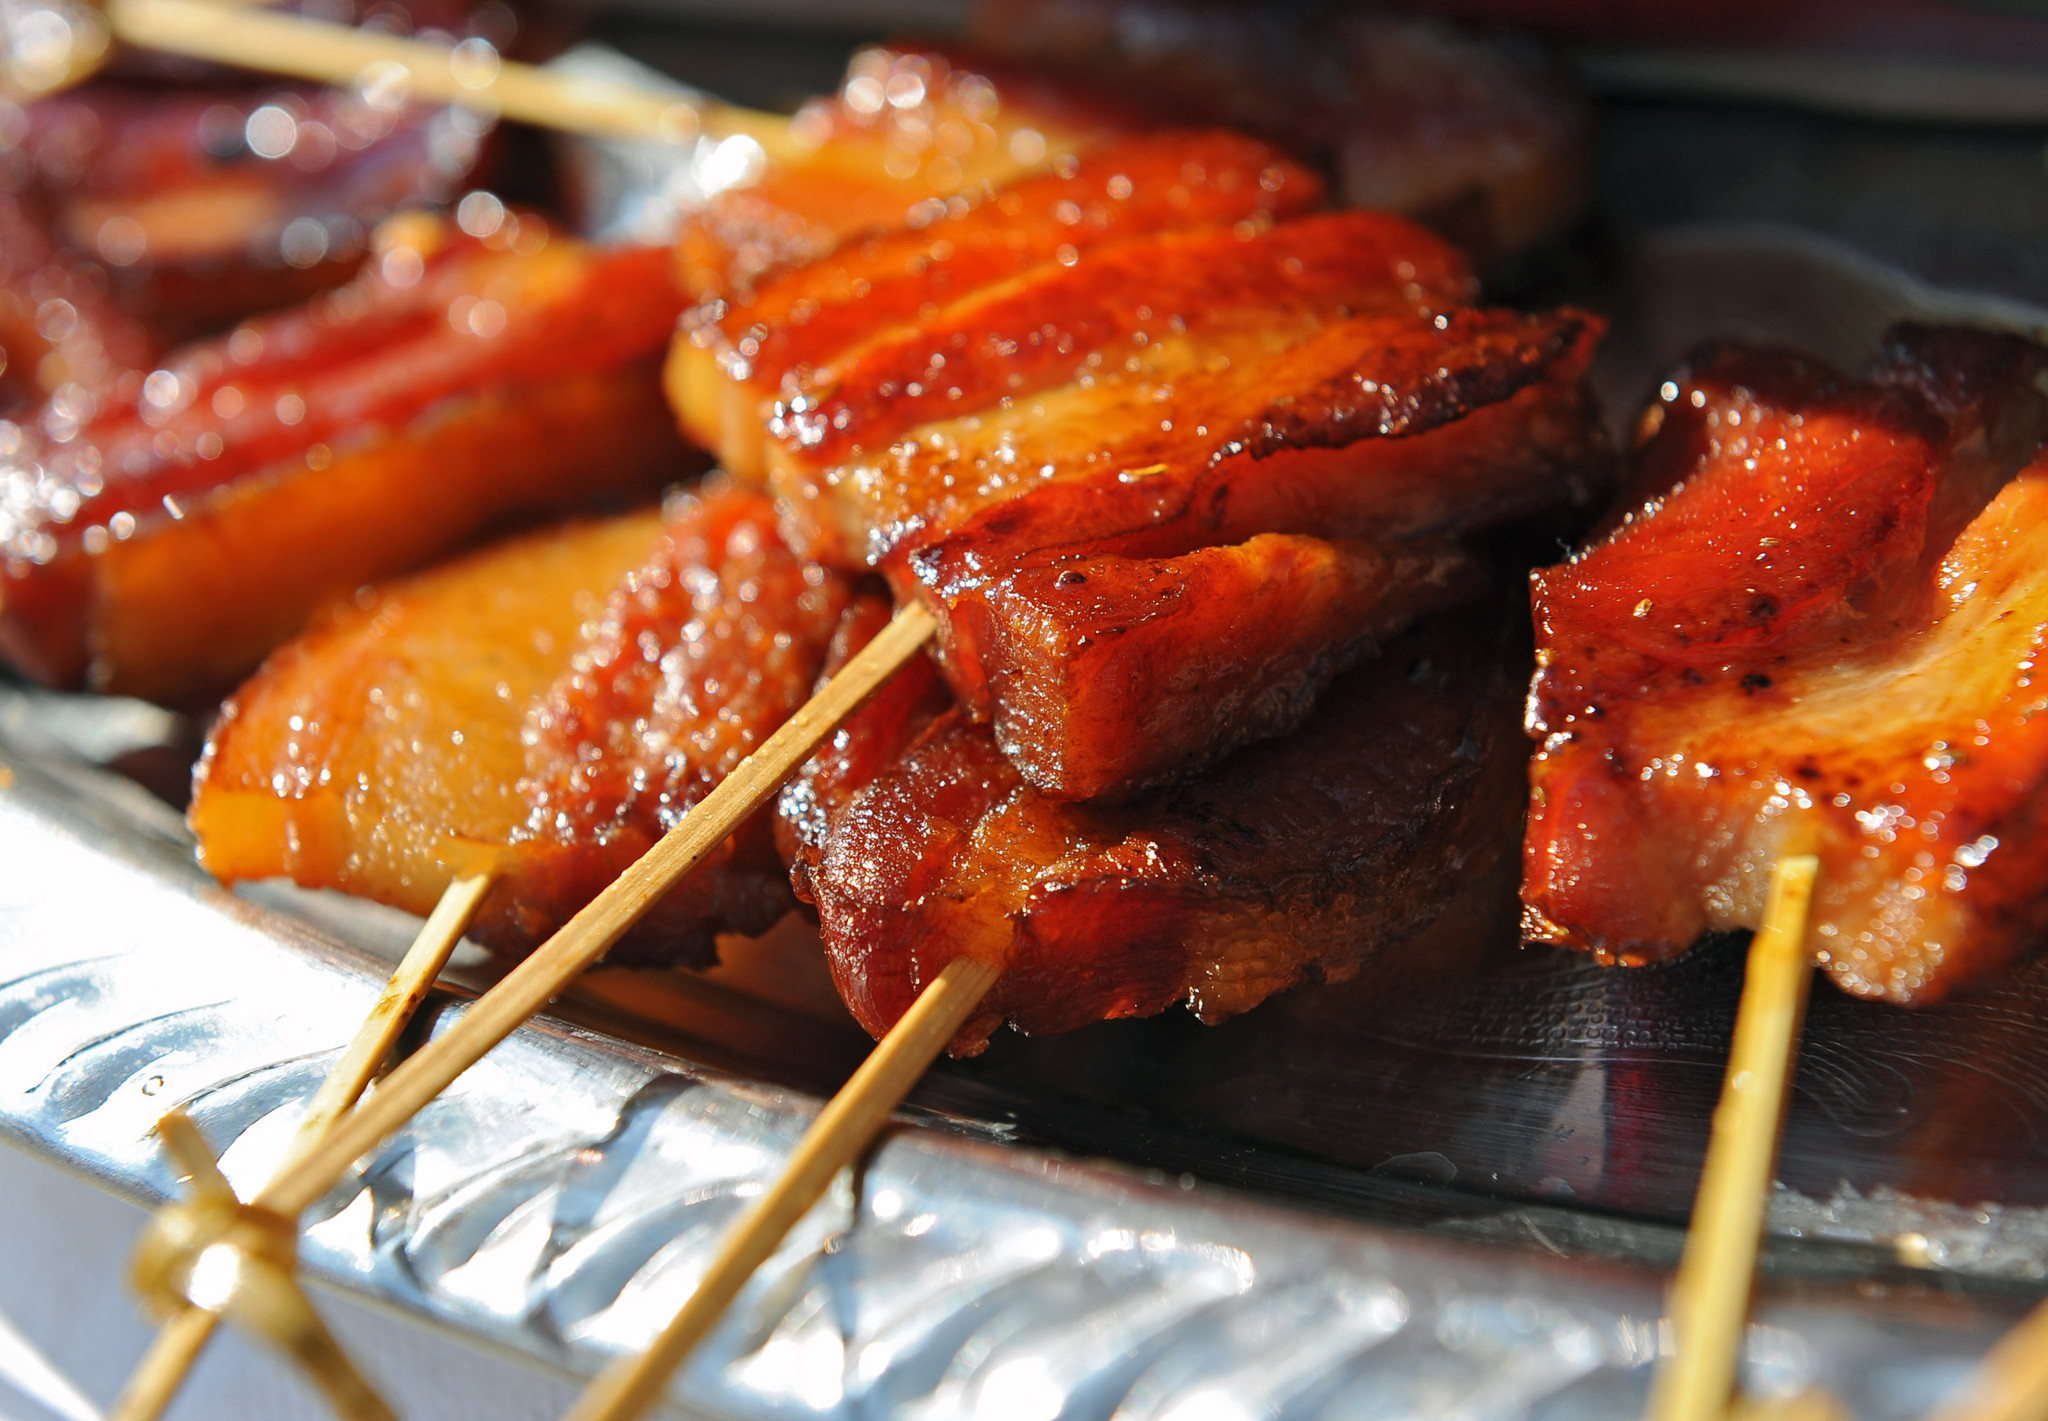 New food items at Oriole Park, and some returning favorites [Pictures] - Bacon-on-a-stick